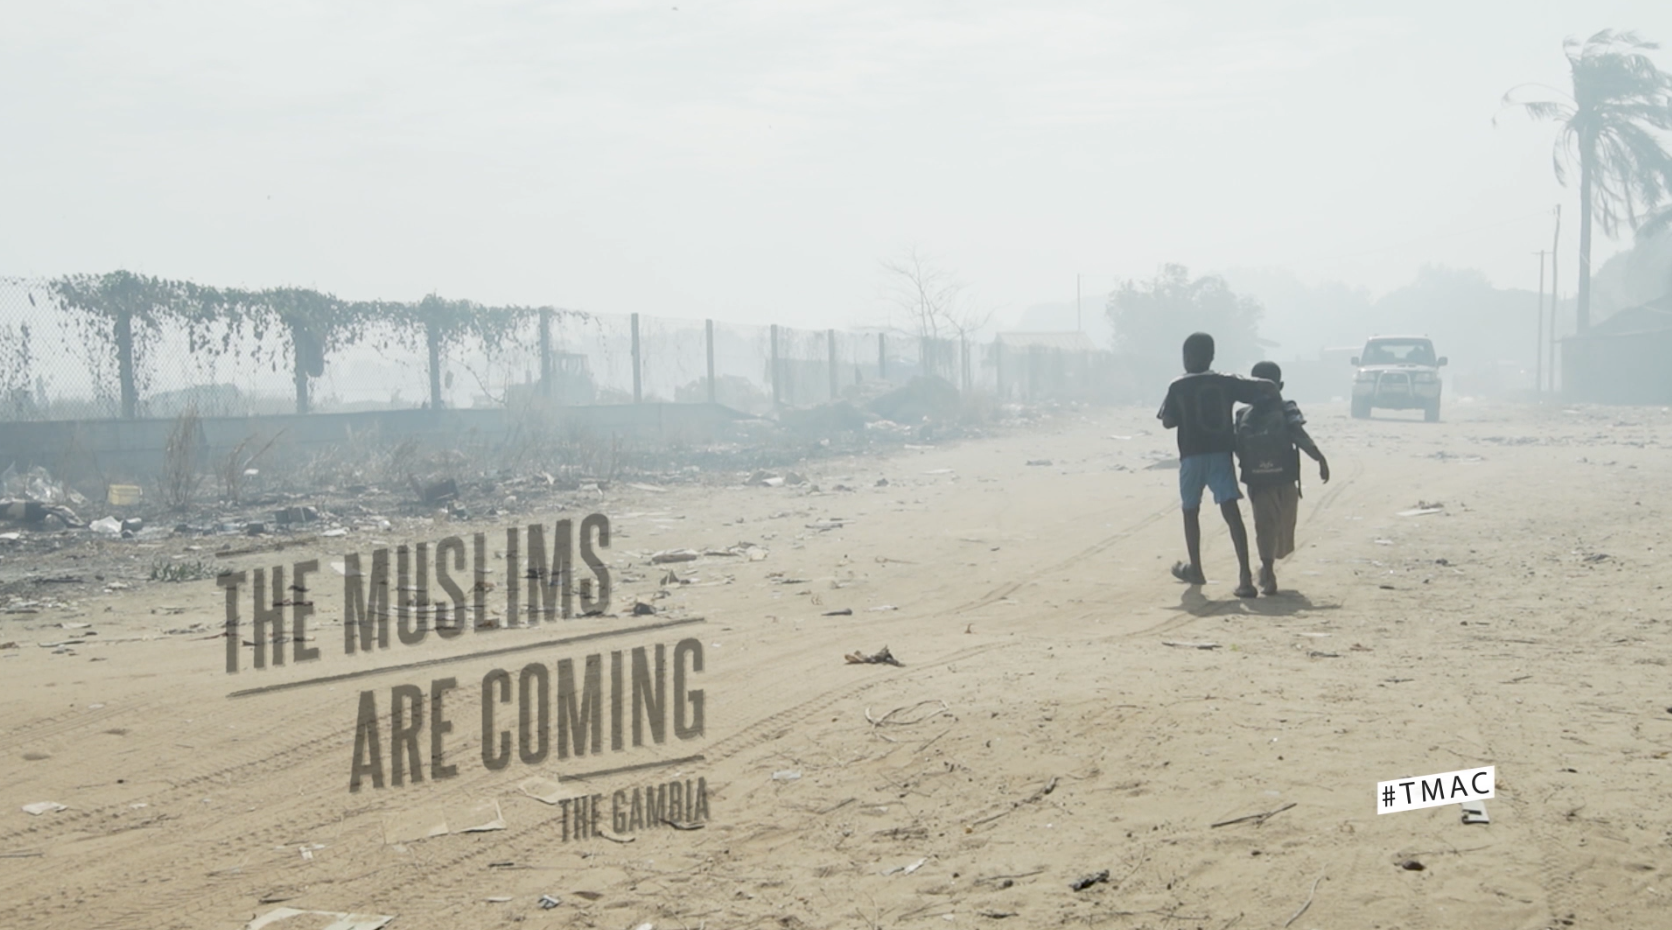 The Muslims are Coming: The Gambia